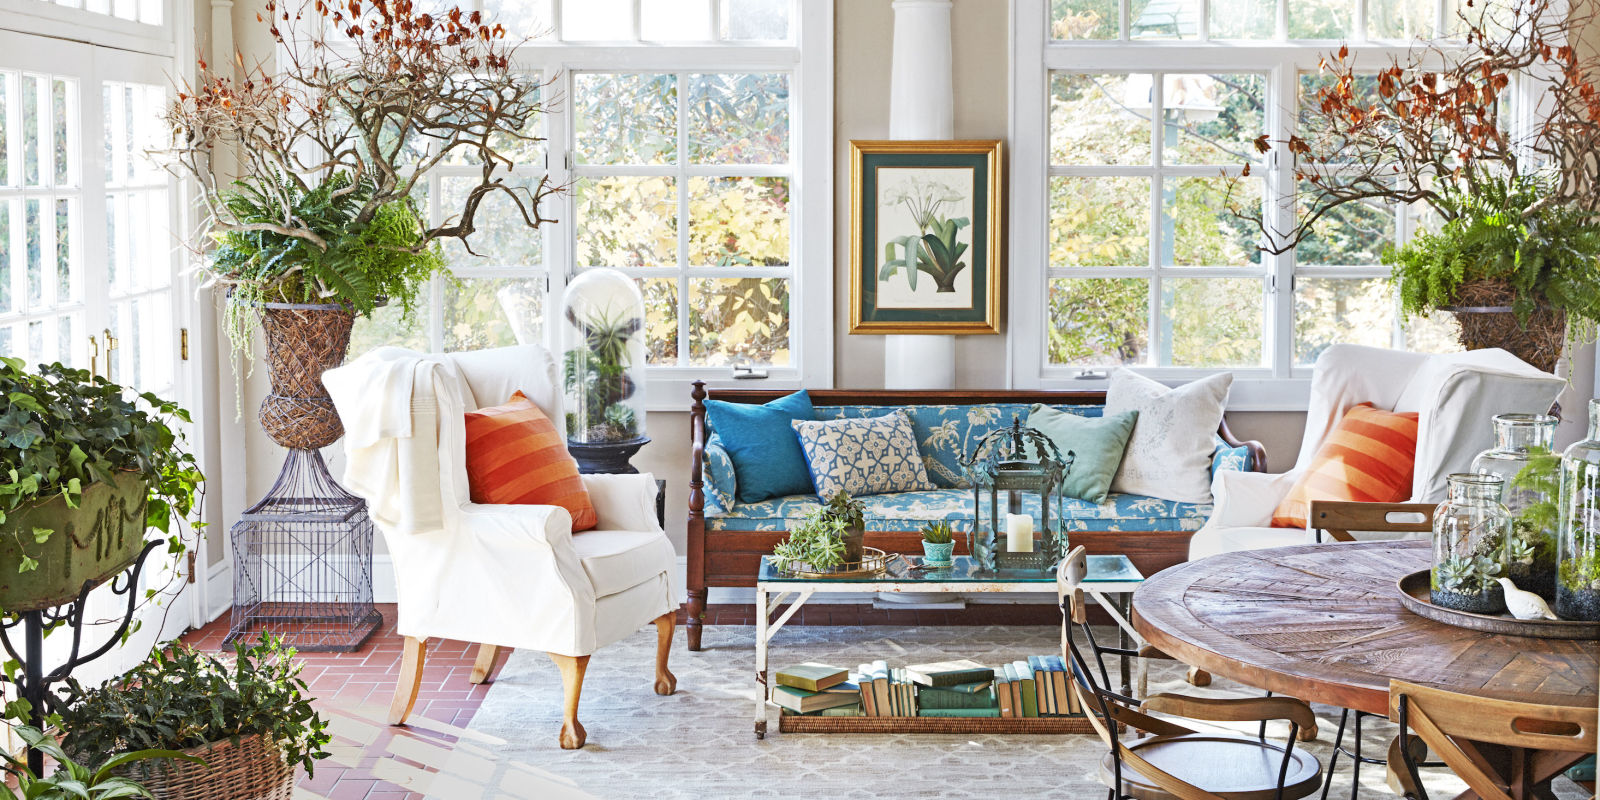 10 sunroom decorating ideas best designs for sun rooms for W home decor